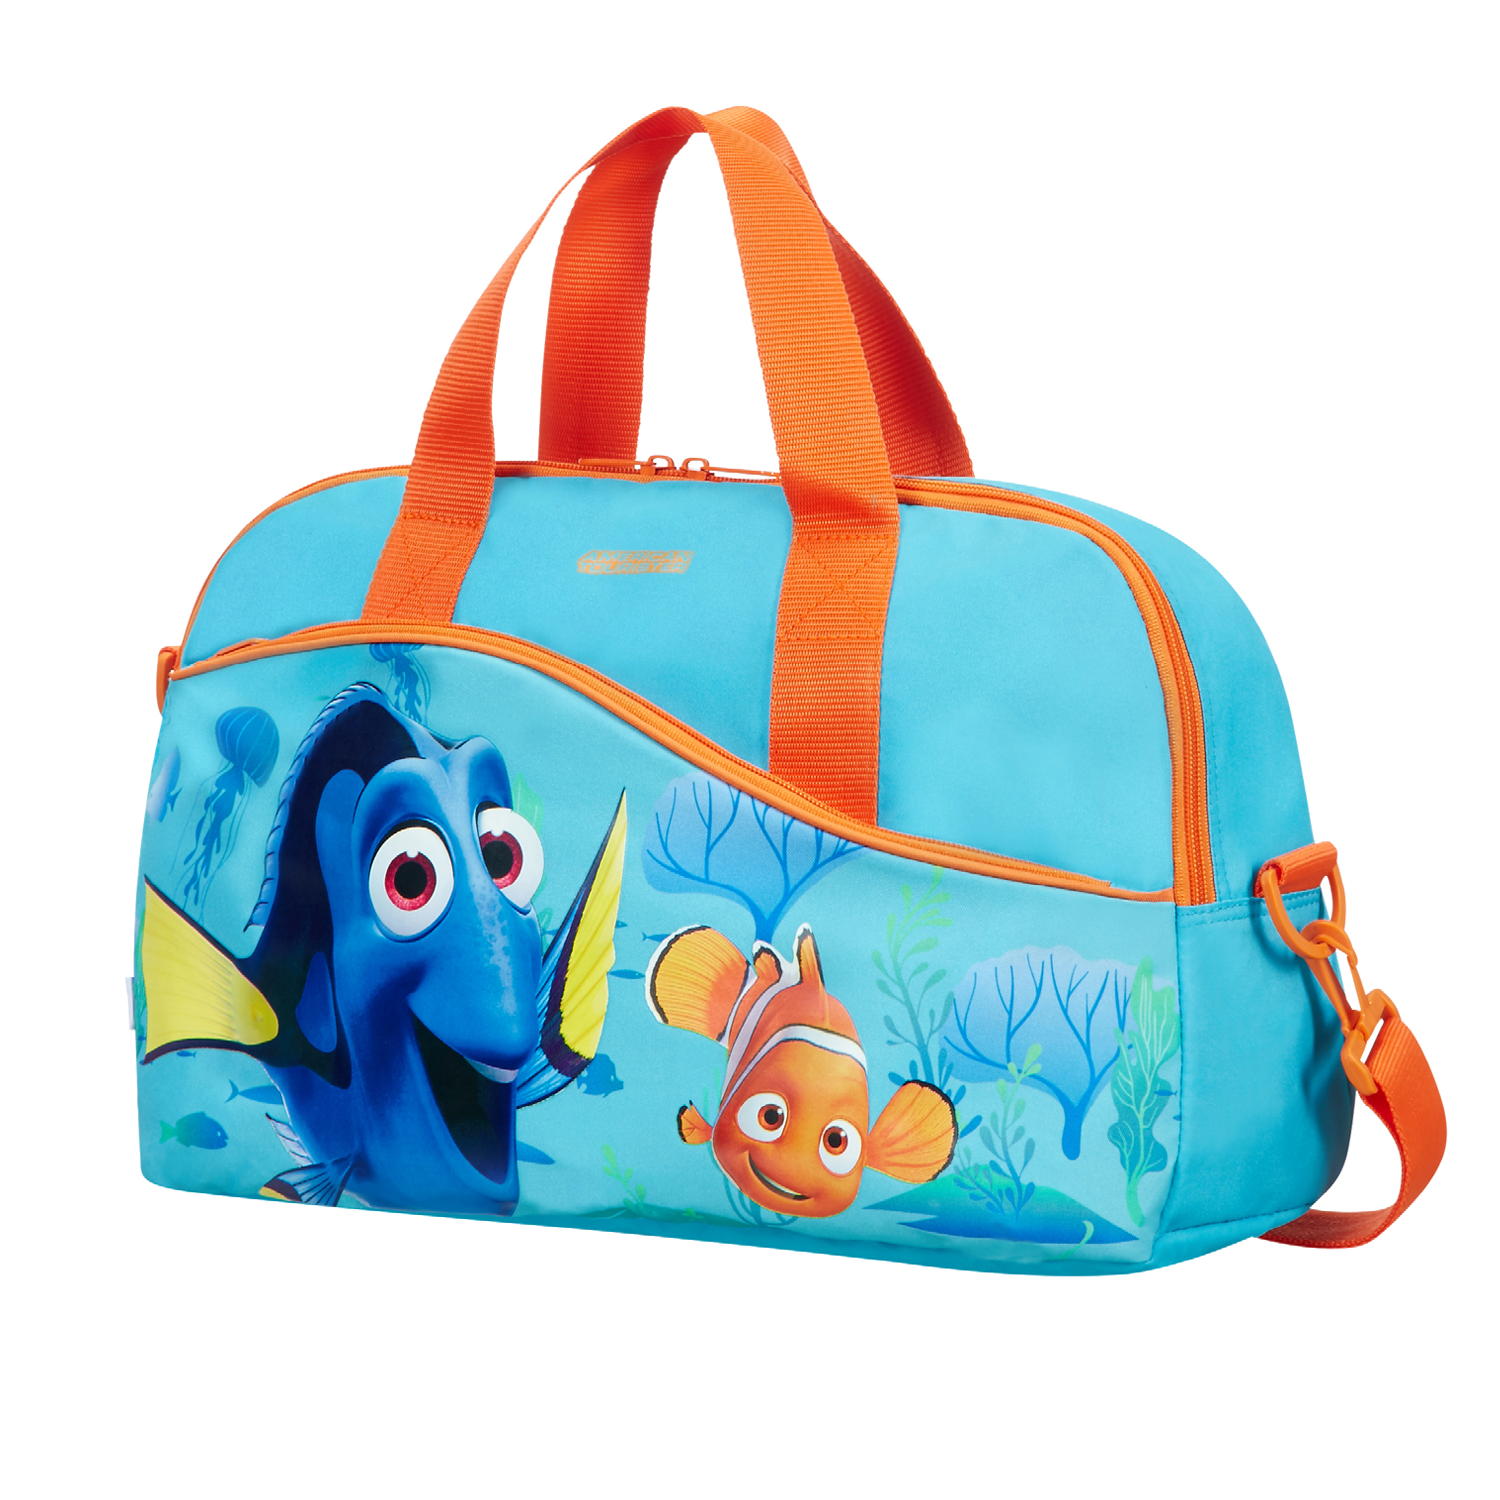 AMERICAN TOURISTER – Παιδική τσάντα Disney by American Tourister μπλε